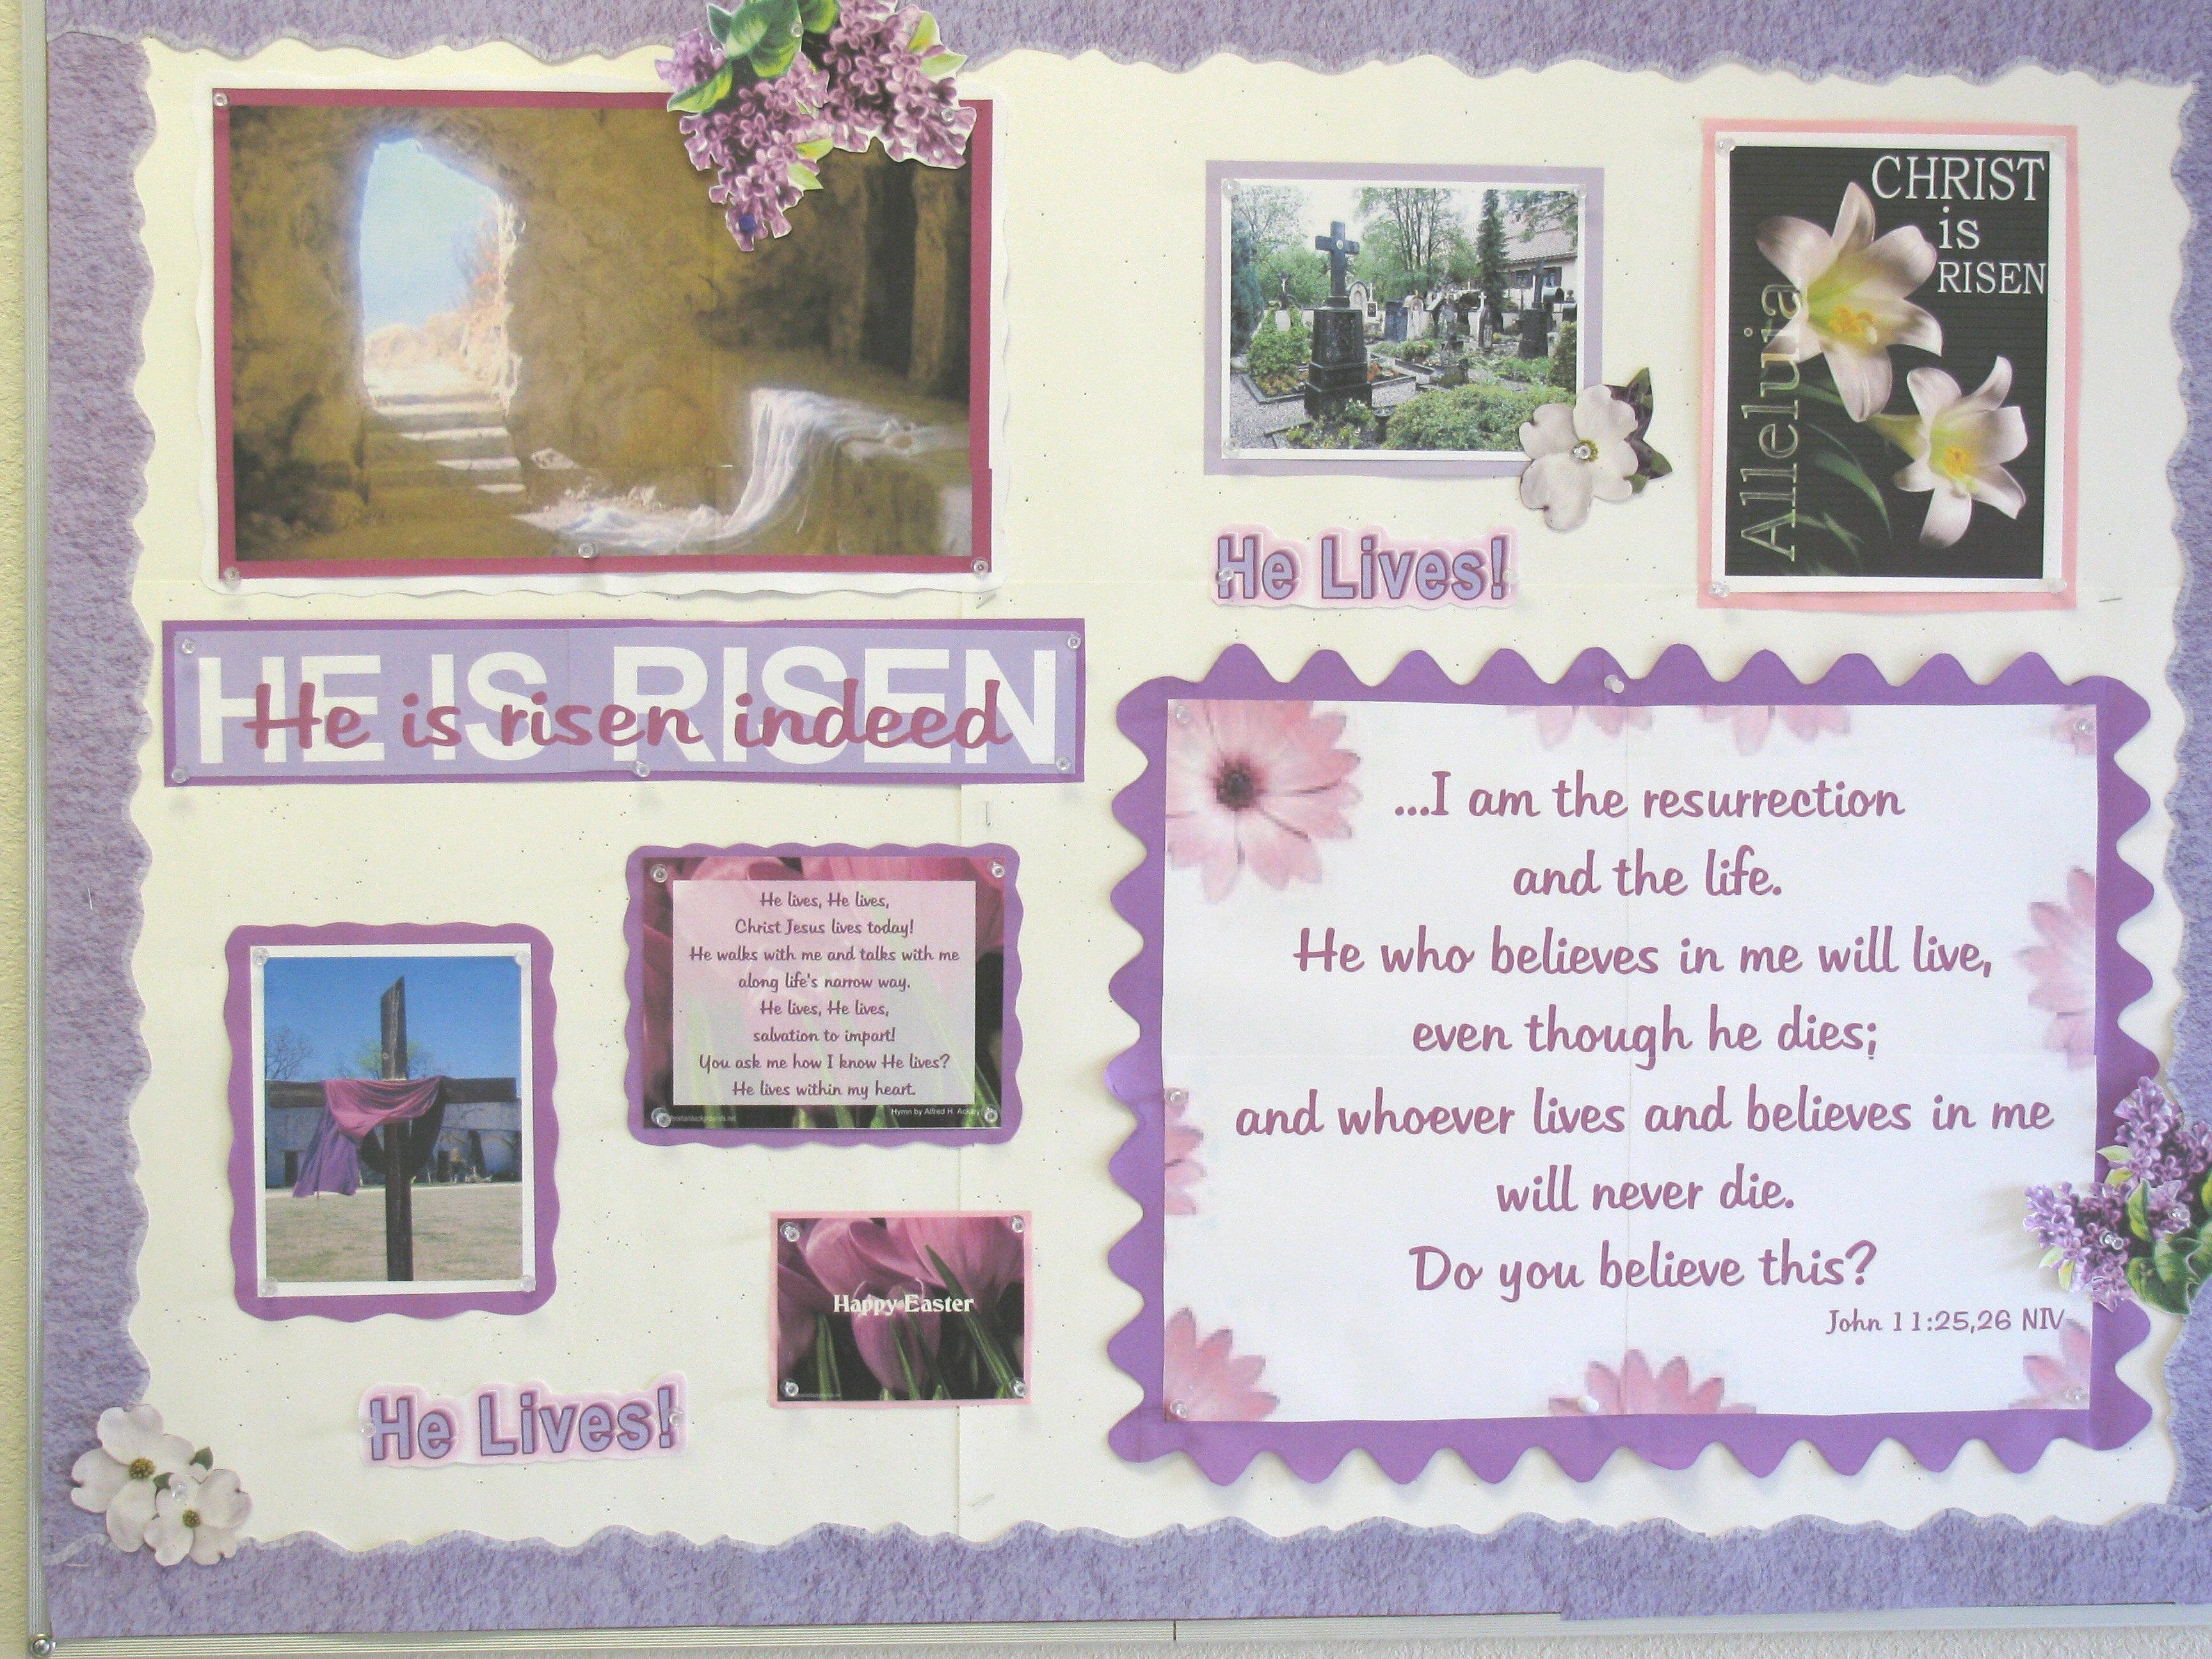 10 Most Recommended Easter Bulletin Board Ideas For Church bulletin boards and room decoration 2020